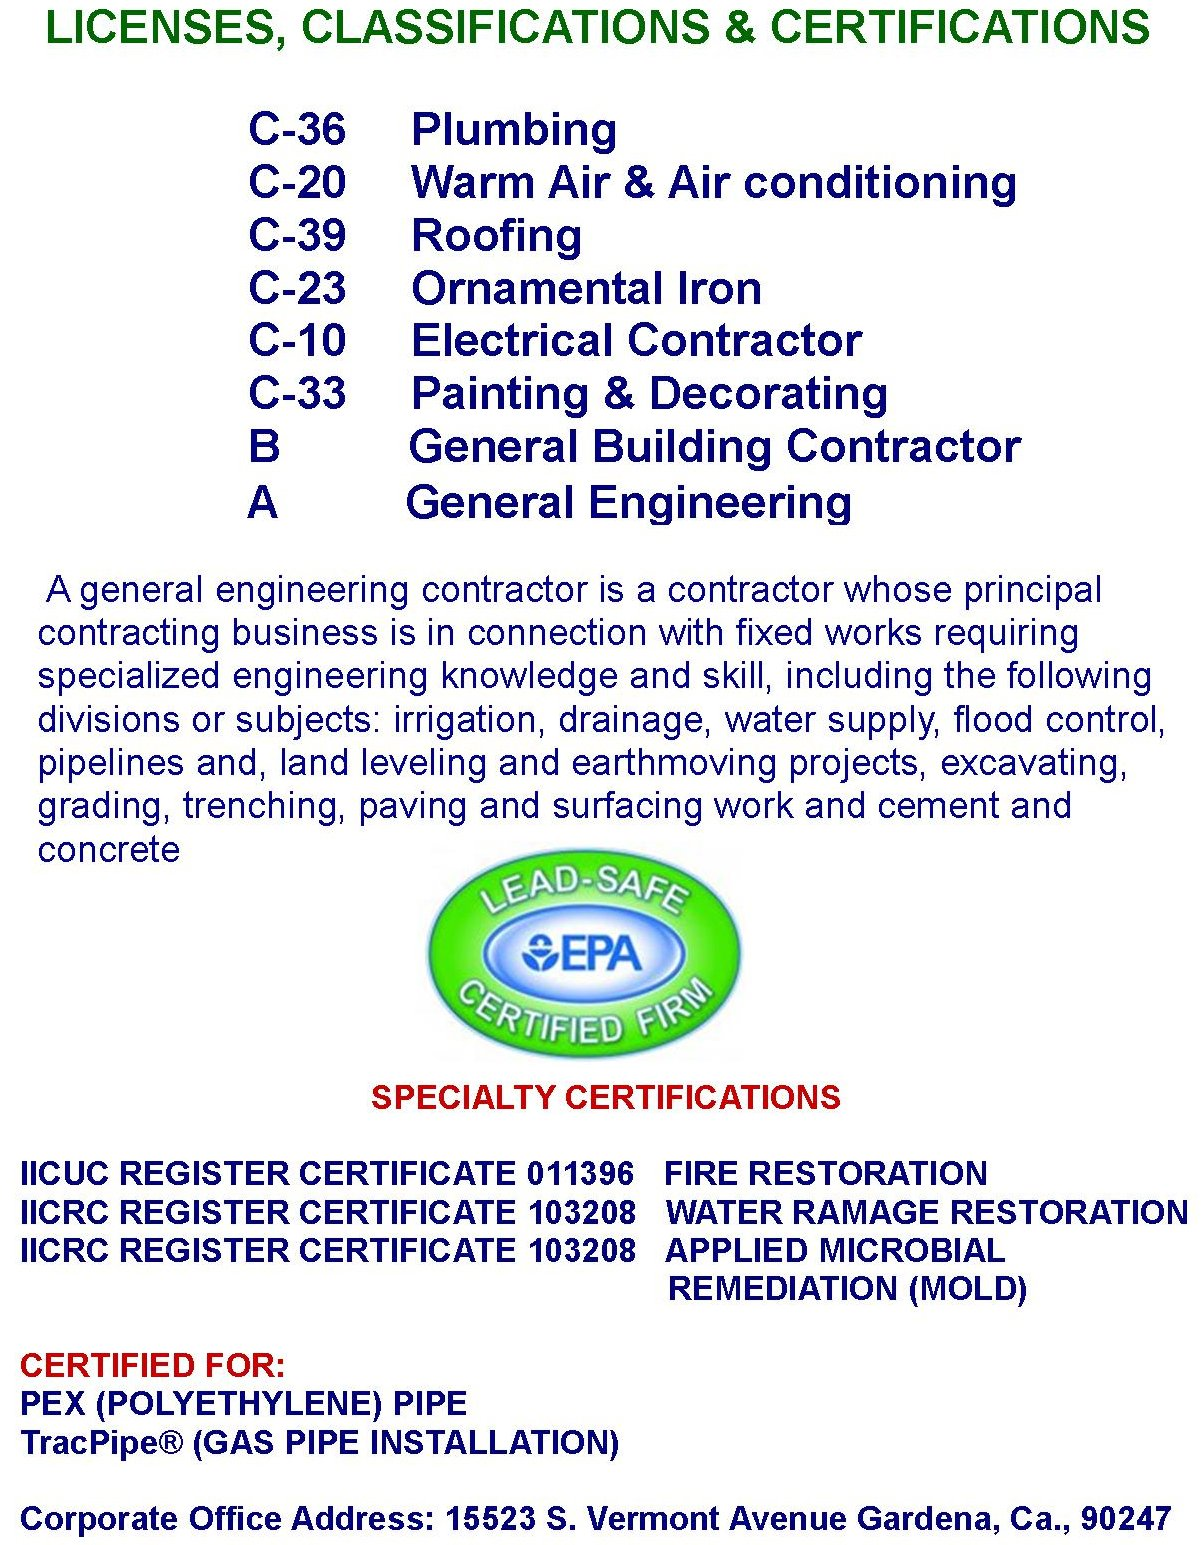 Plumbing License California